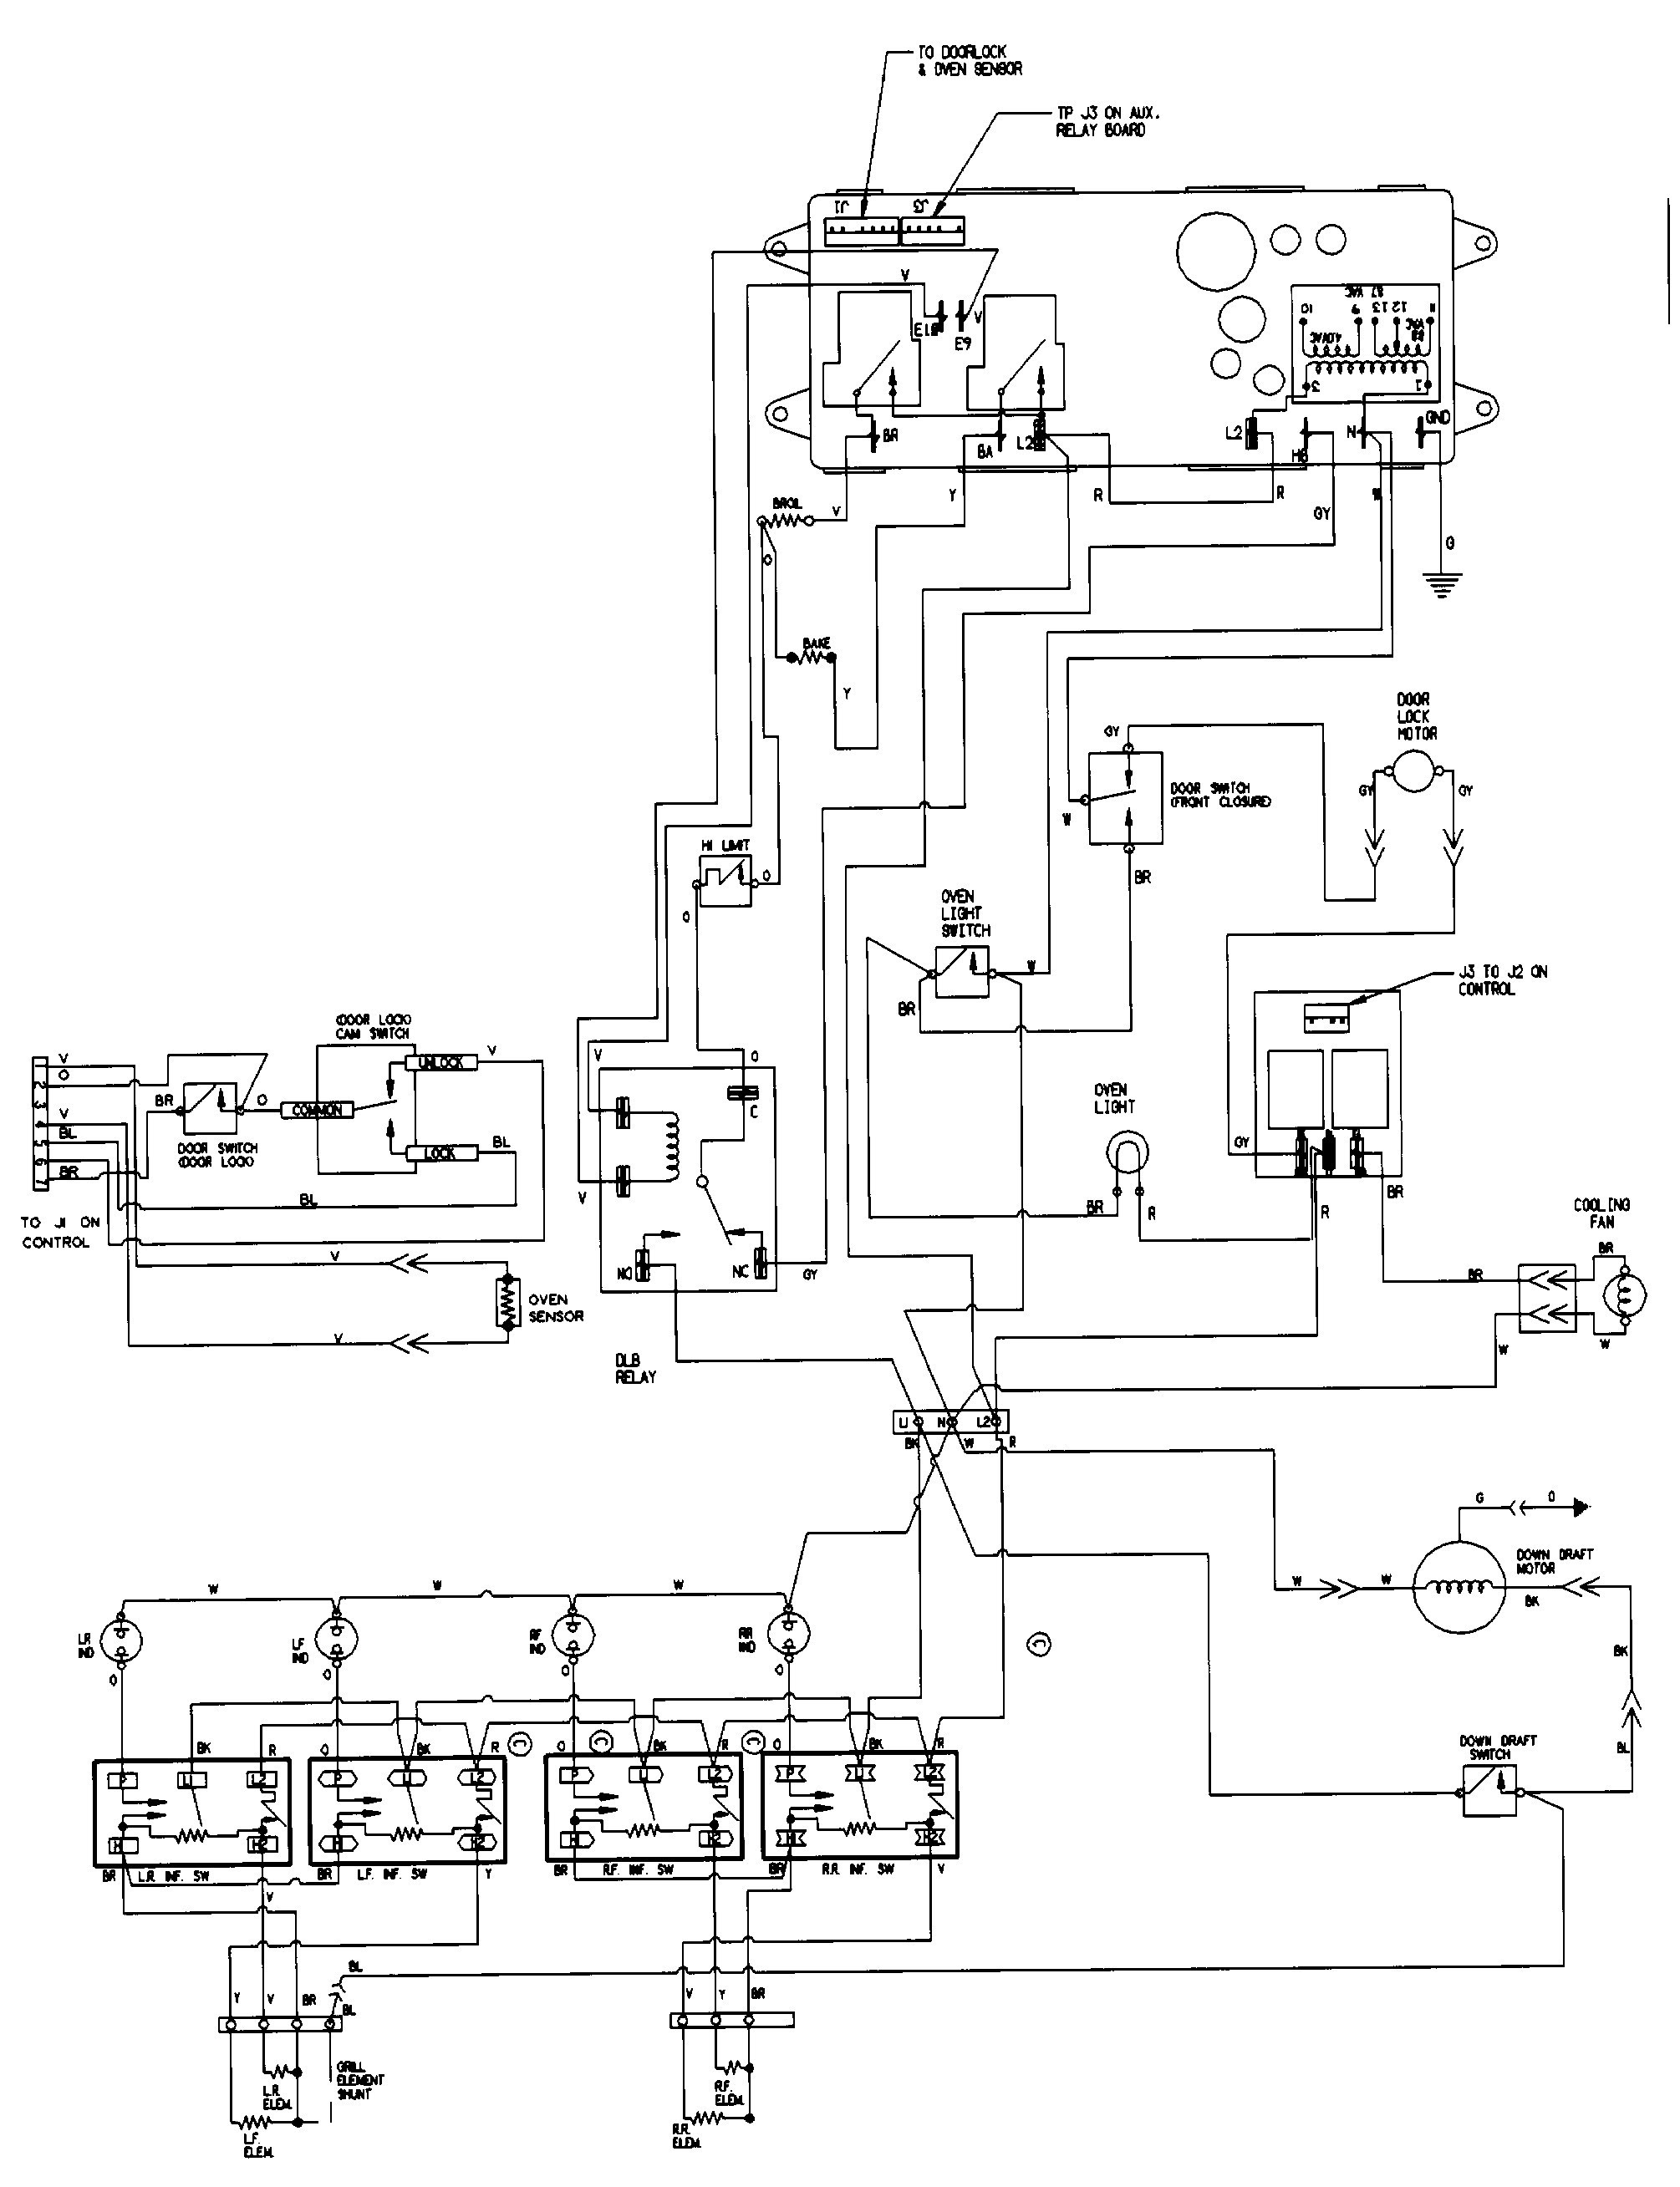 2001 Grand Am Wiring Diagram